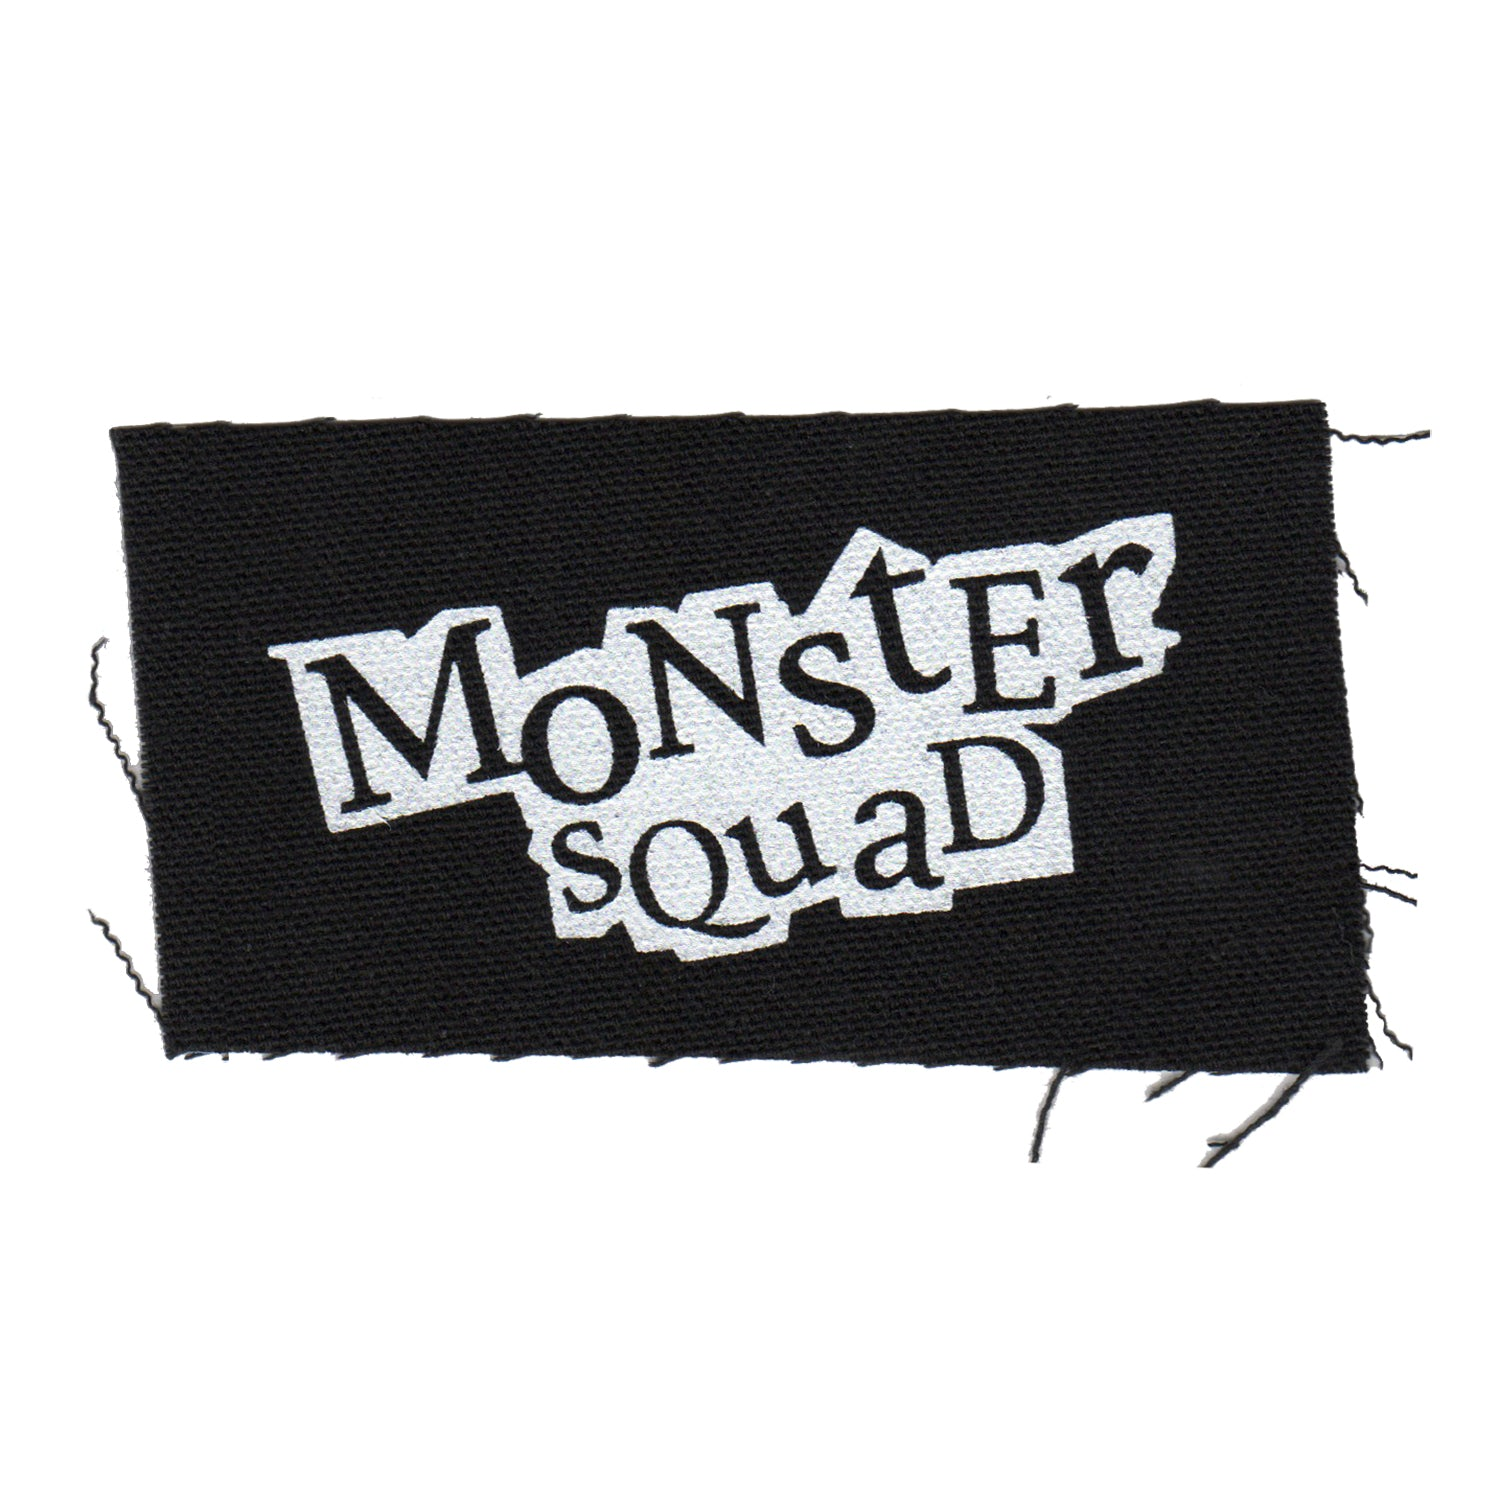 "Monster Squad - Logo - Black - Patch - Cloth - Screenprinted - 4"" x 2"""